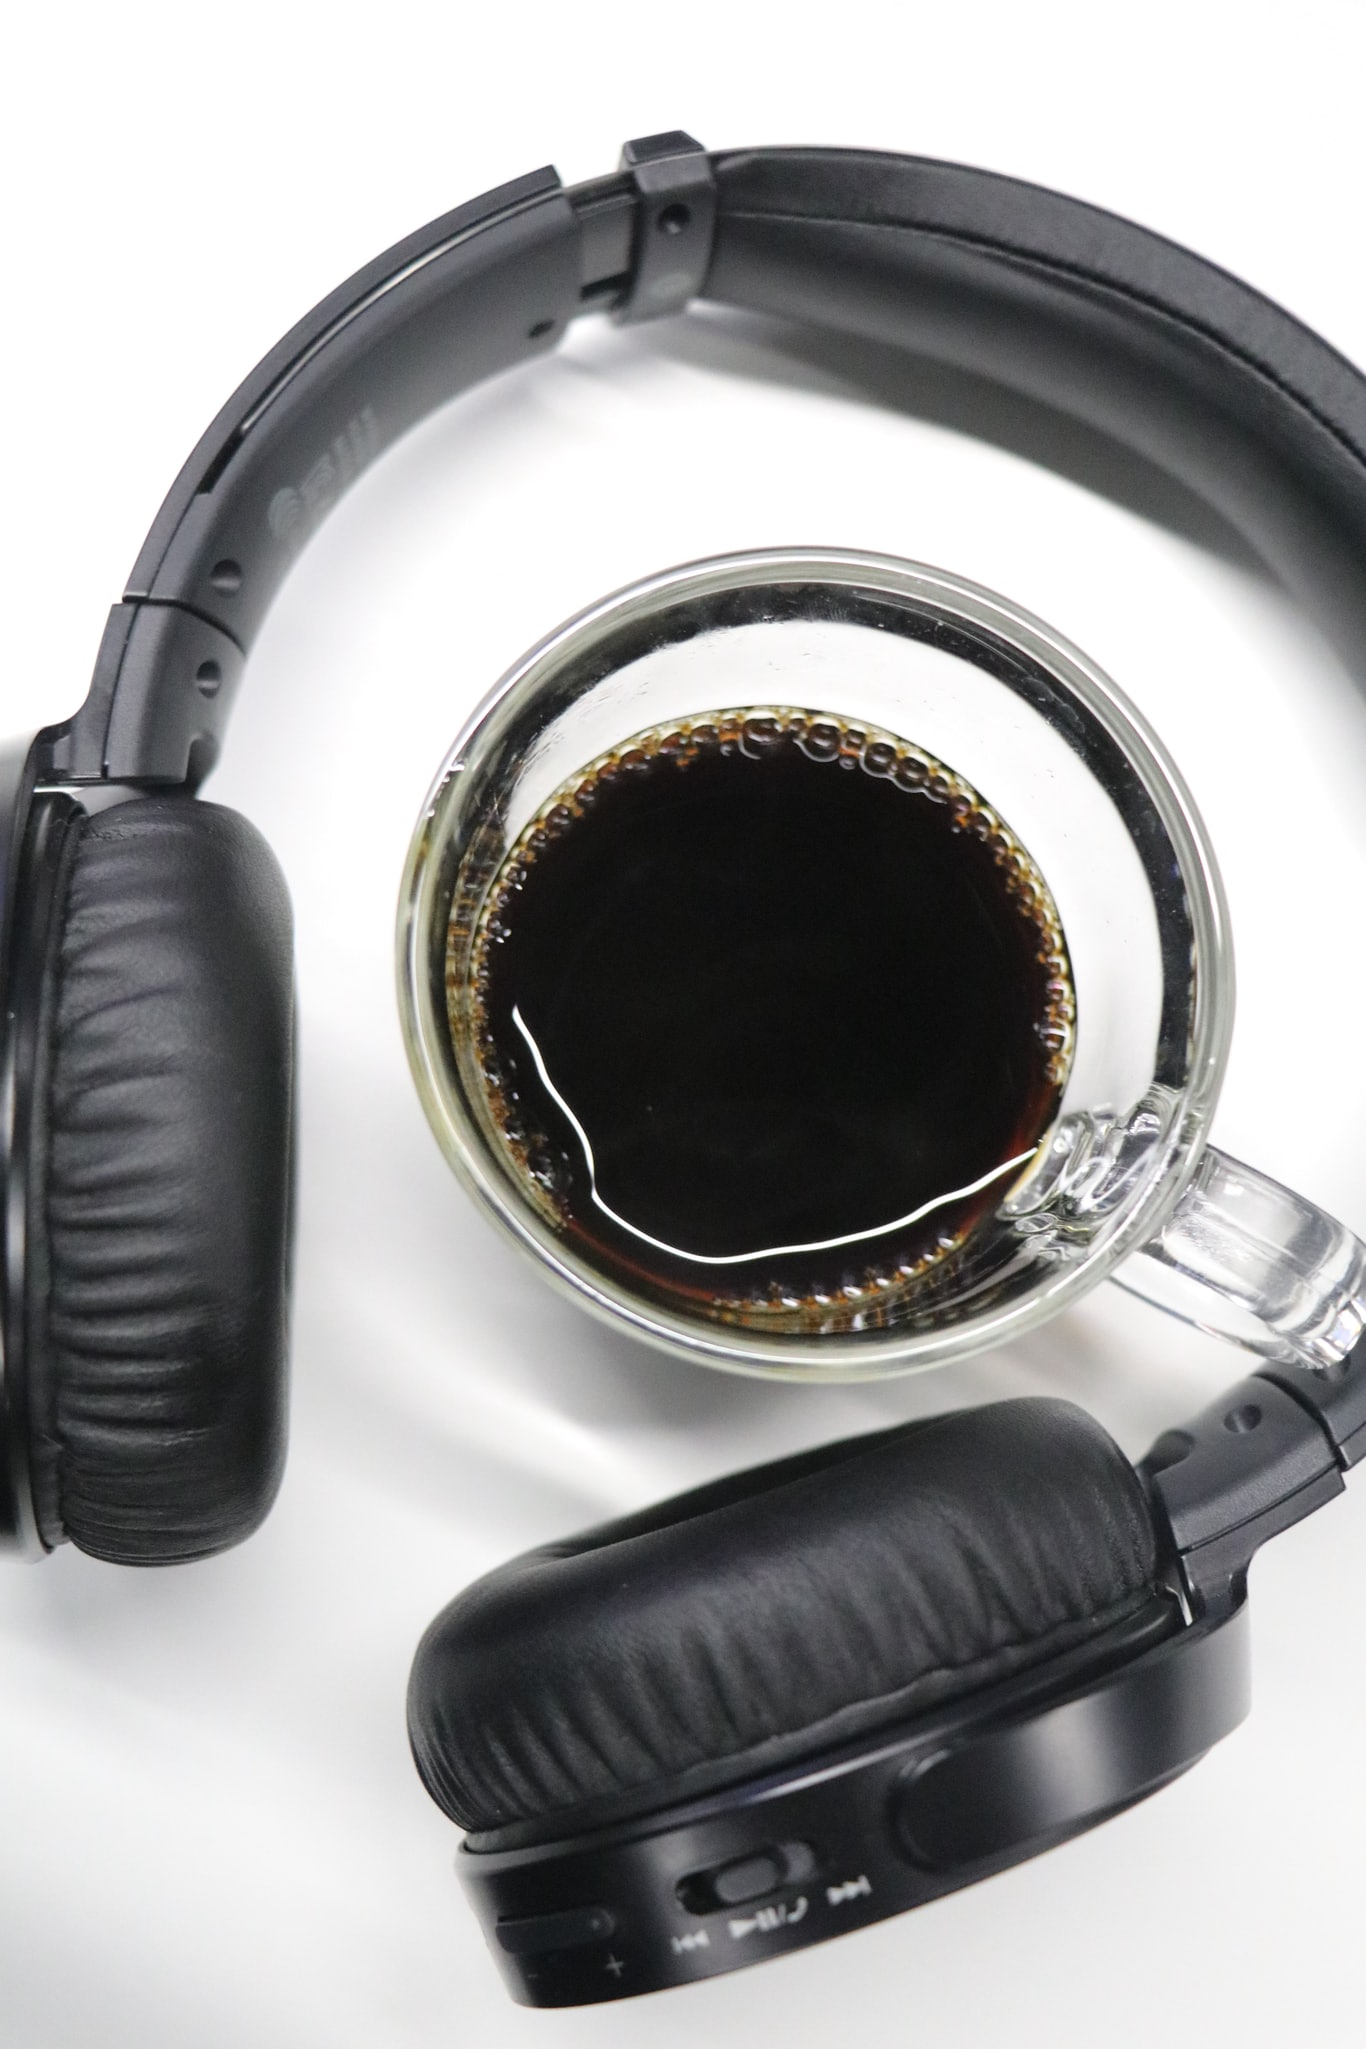 half-filled clear glass cup in black wireless headphones